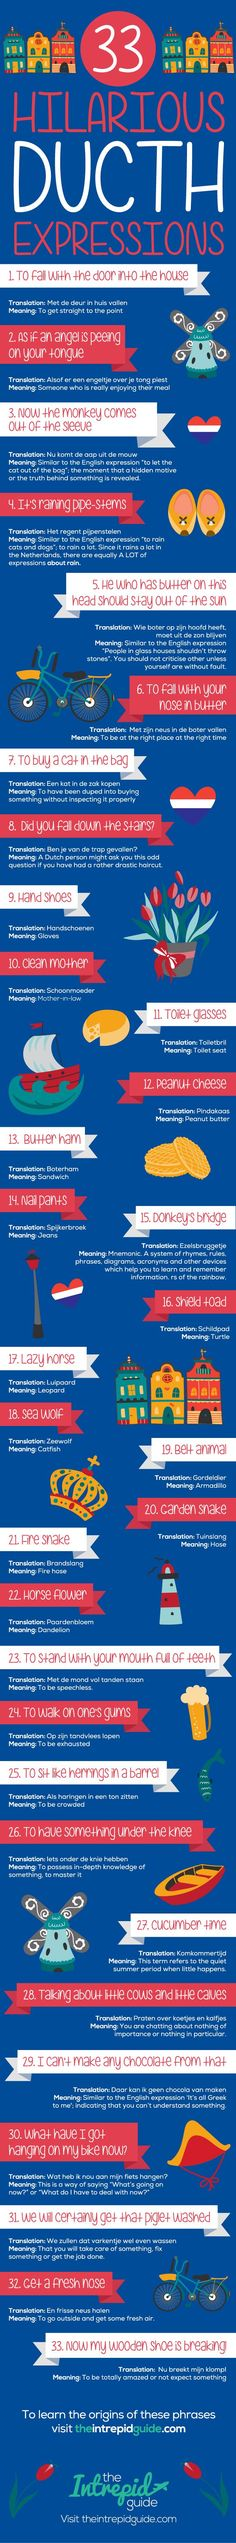 33 Hilarious Dutch Expressions - Click on image for their origins